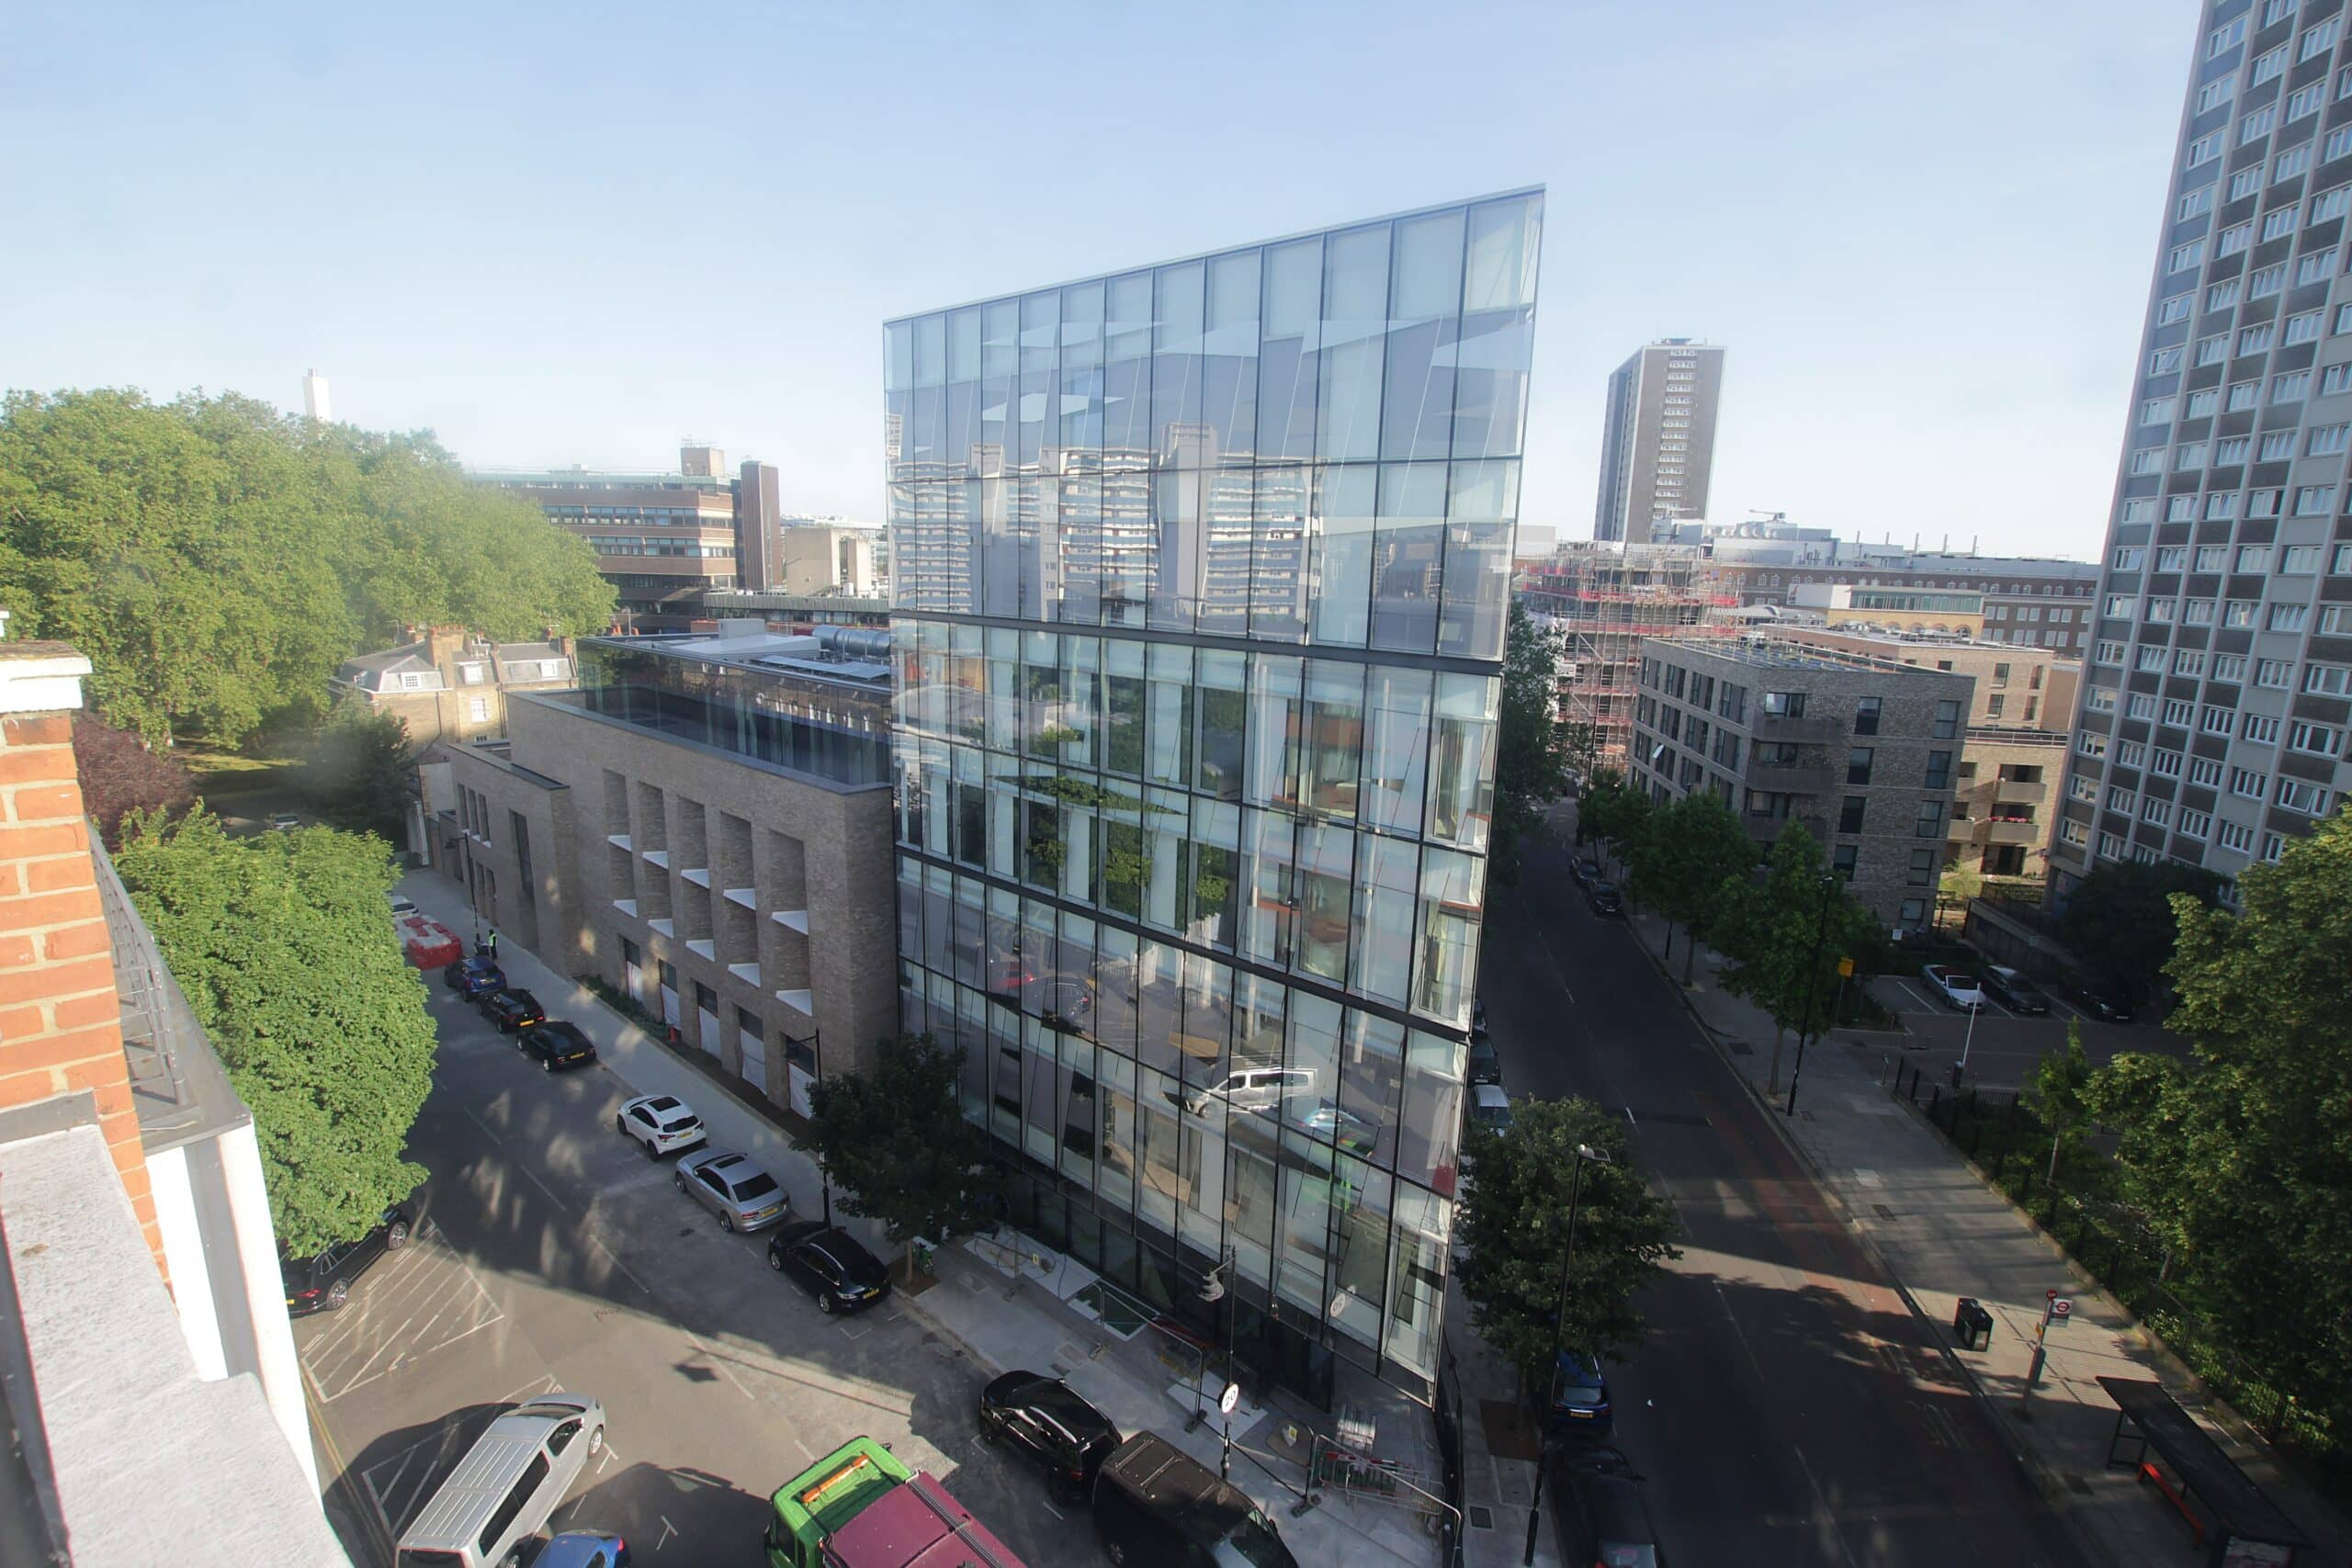 New City Law School building revealed through our time-lapse